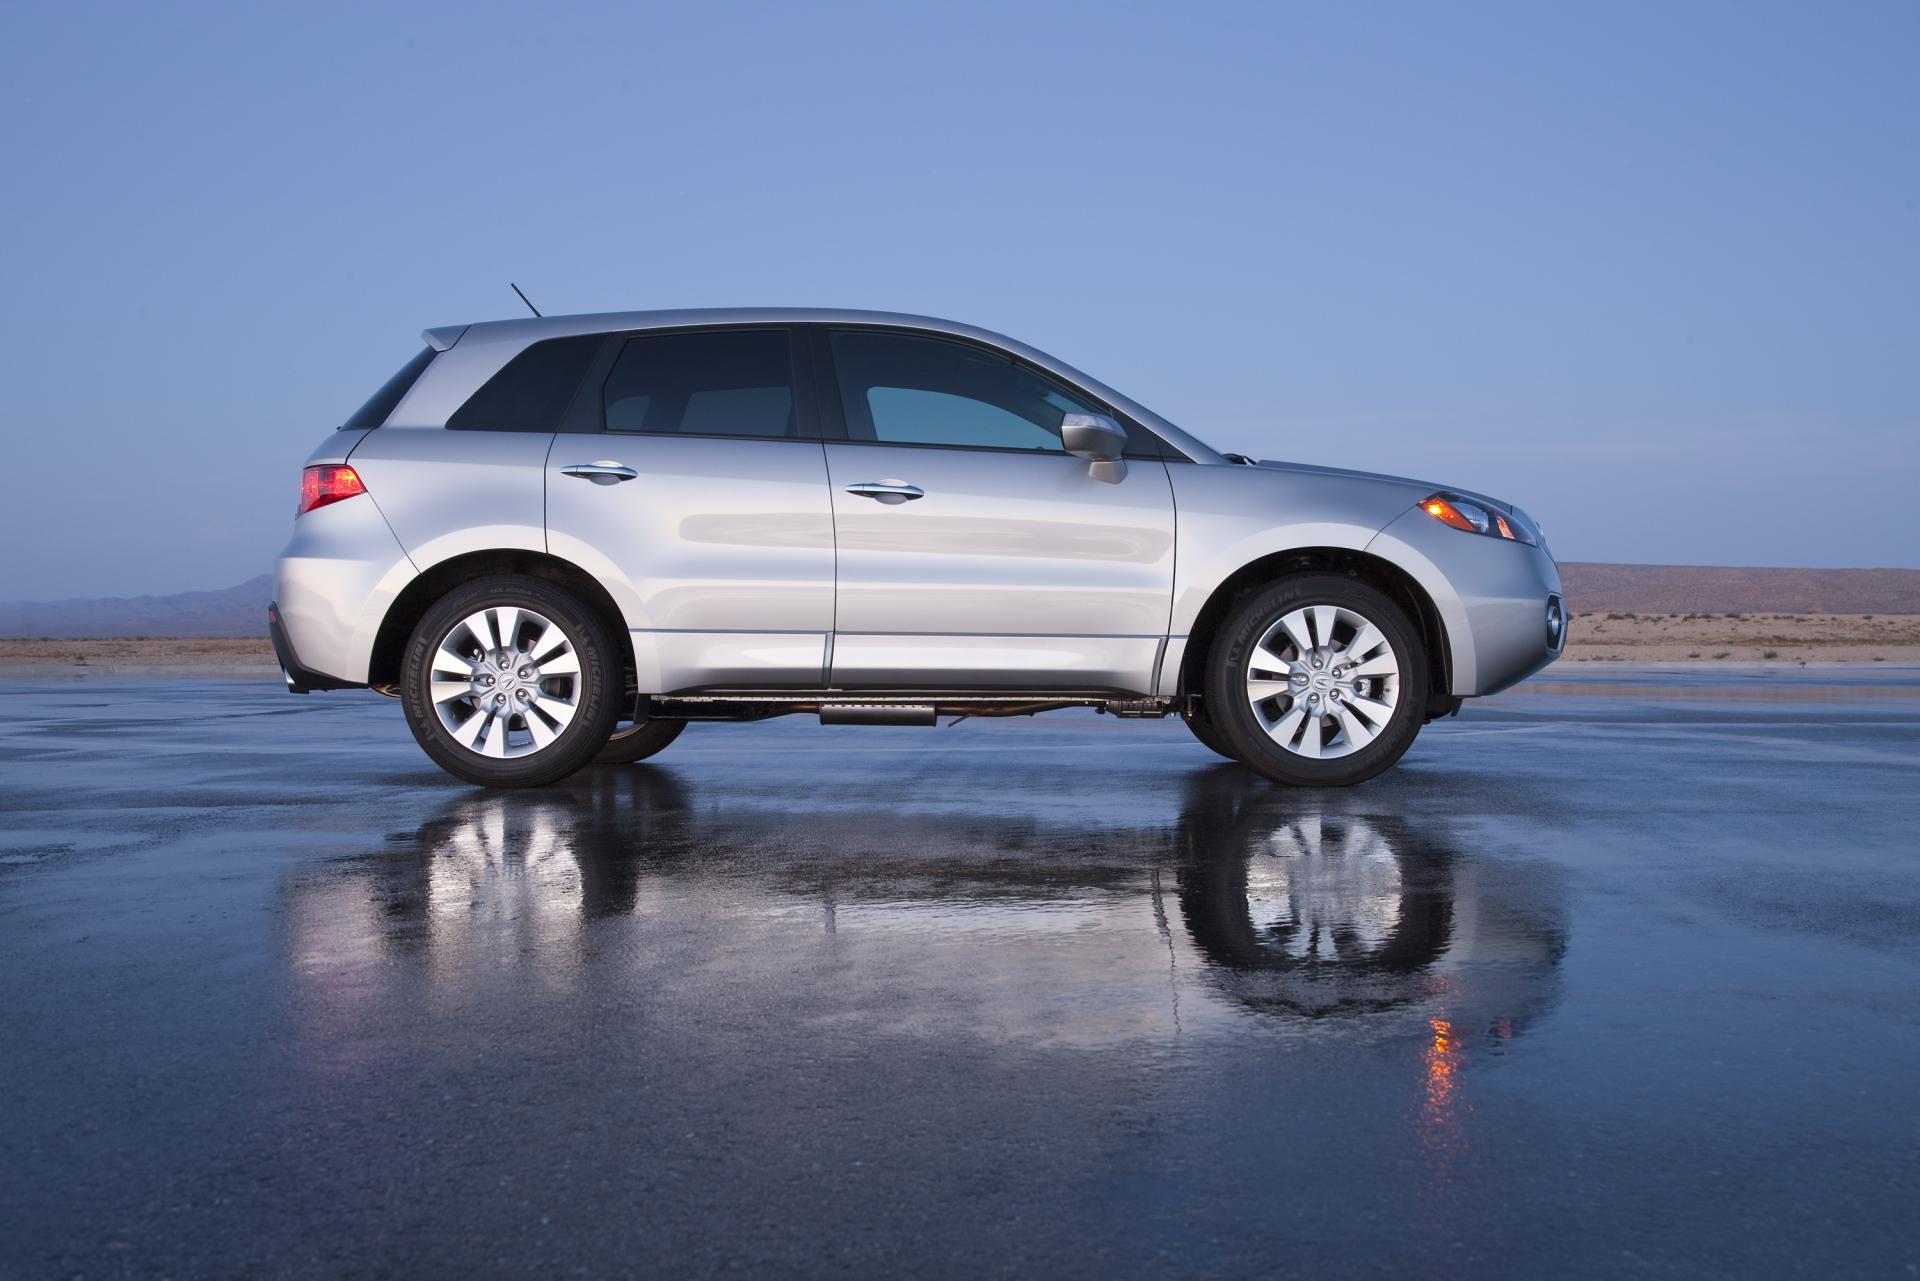 acura for com informations photos rdx sale bestcarmag articles makes